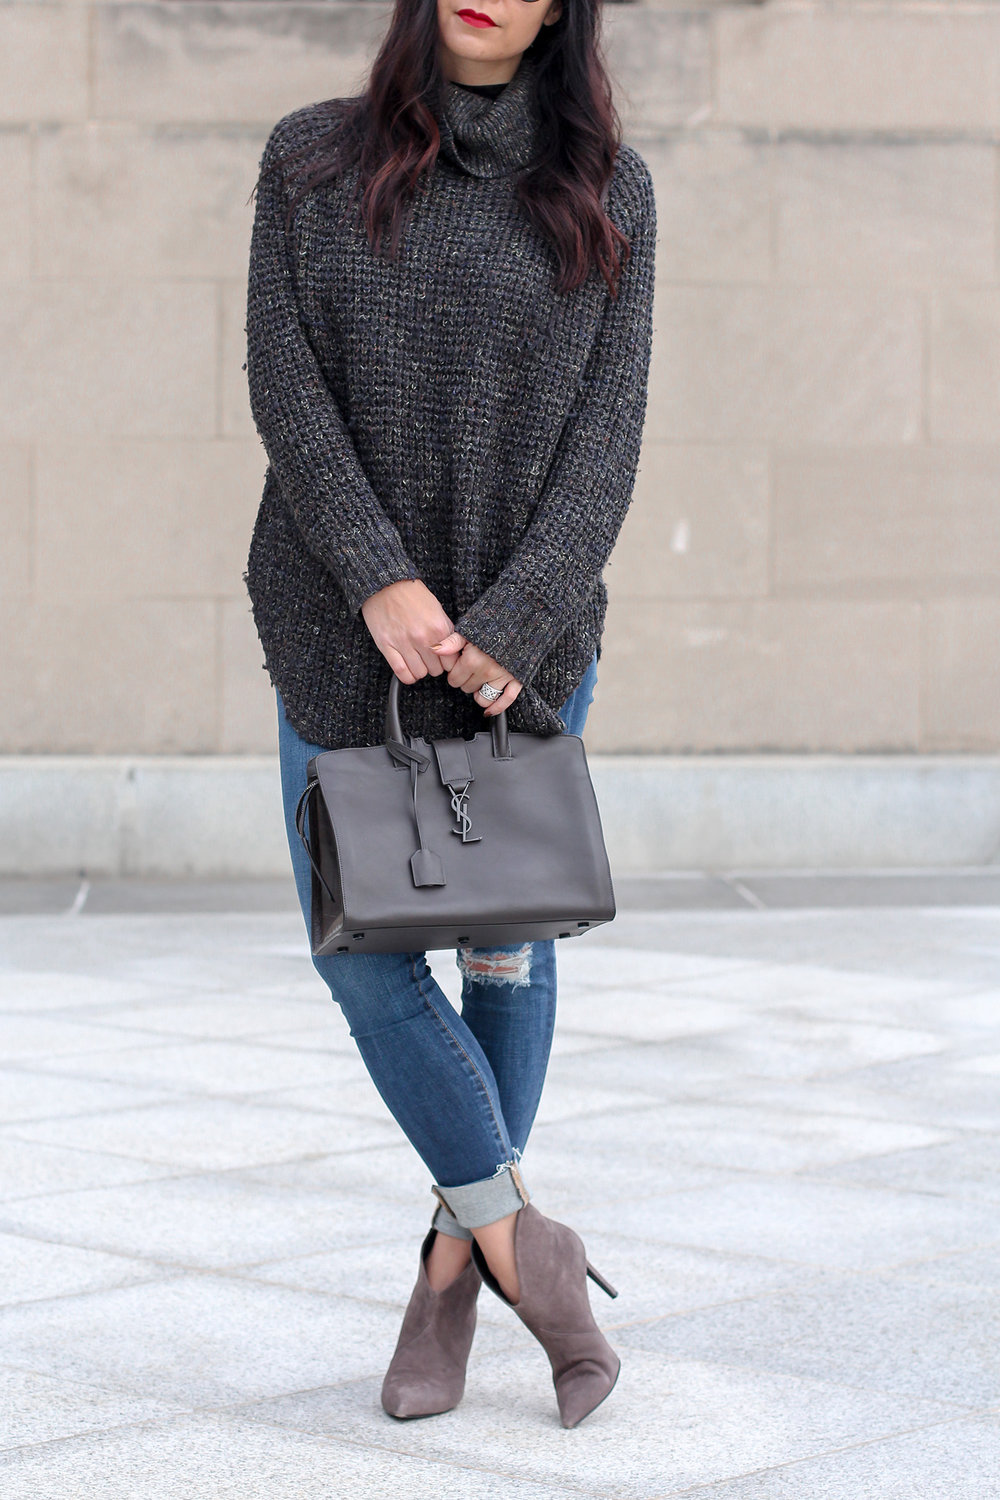 Free People Sweater, Cableknit Sweater, Saint Laurent Cabas Bag